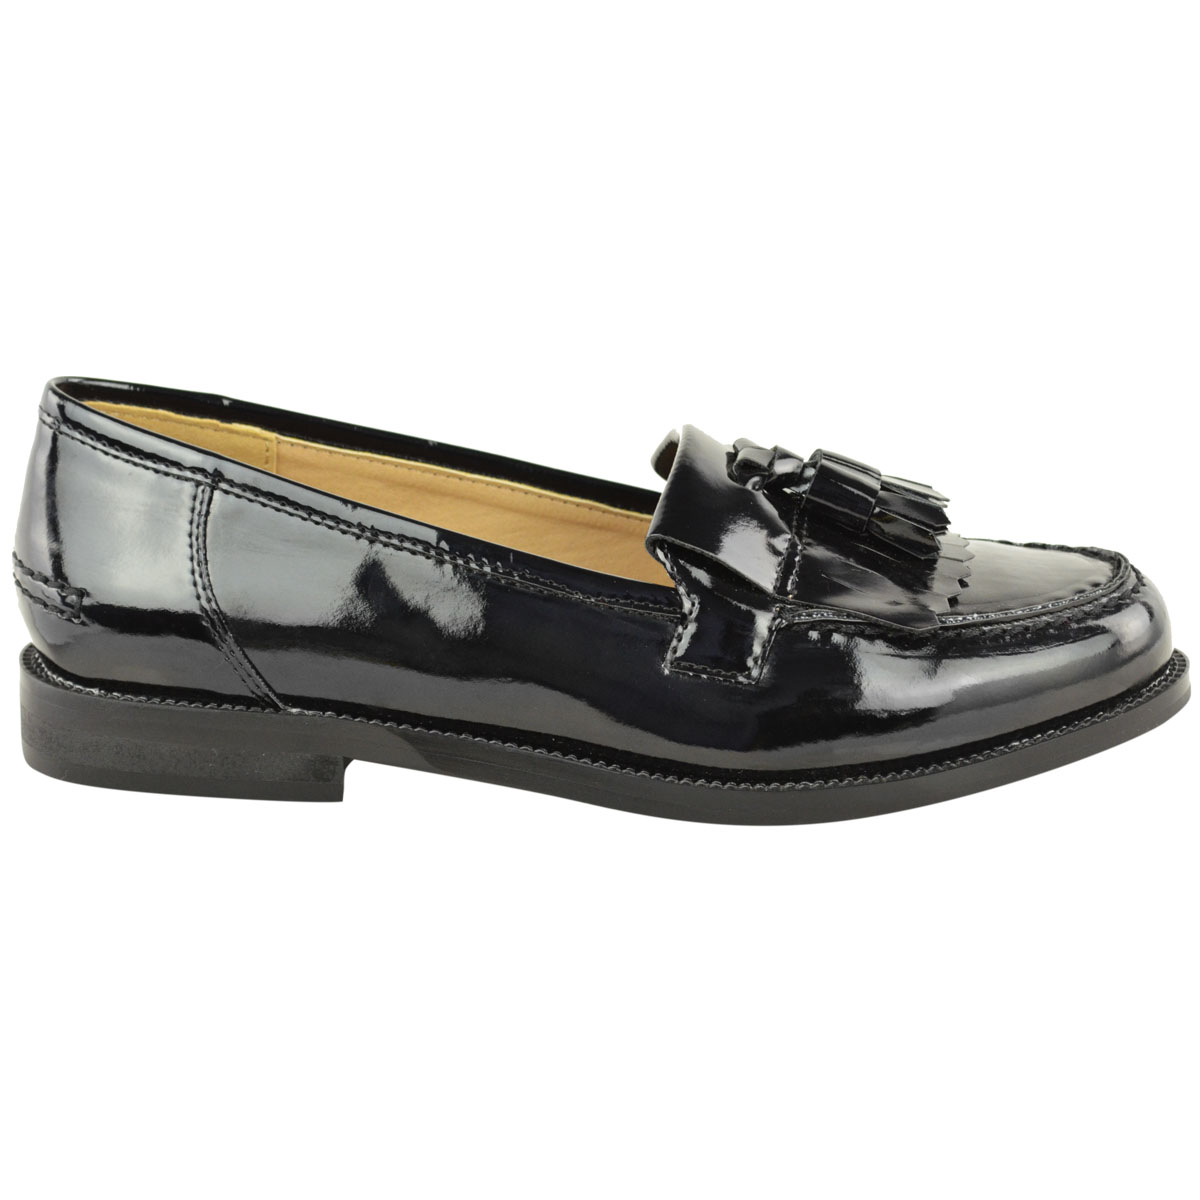 Womens-Ladies-Loafers-Brogues-Pumps-Casual-School-Office-Comfy-Work-Flats-Size thumbnail 15